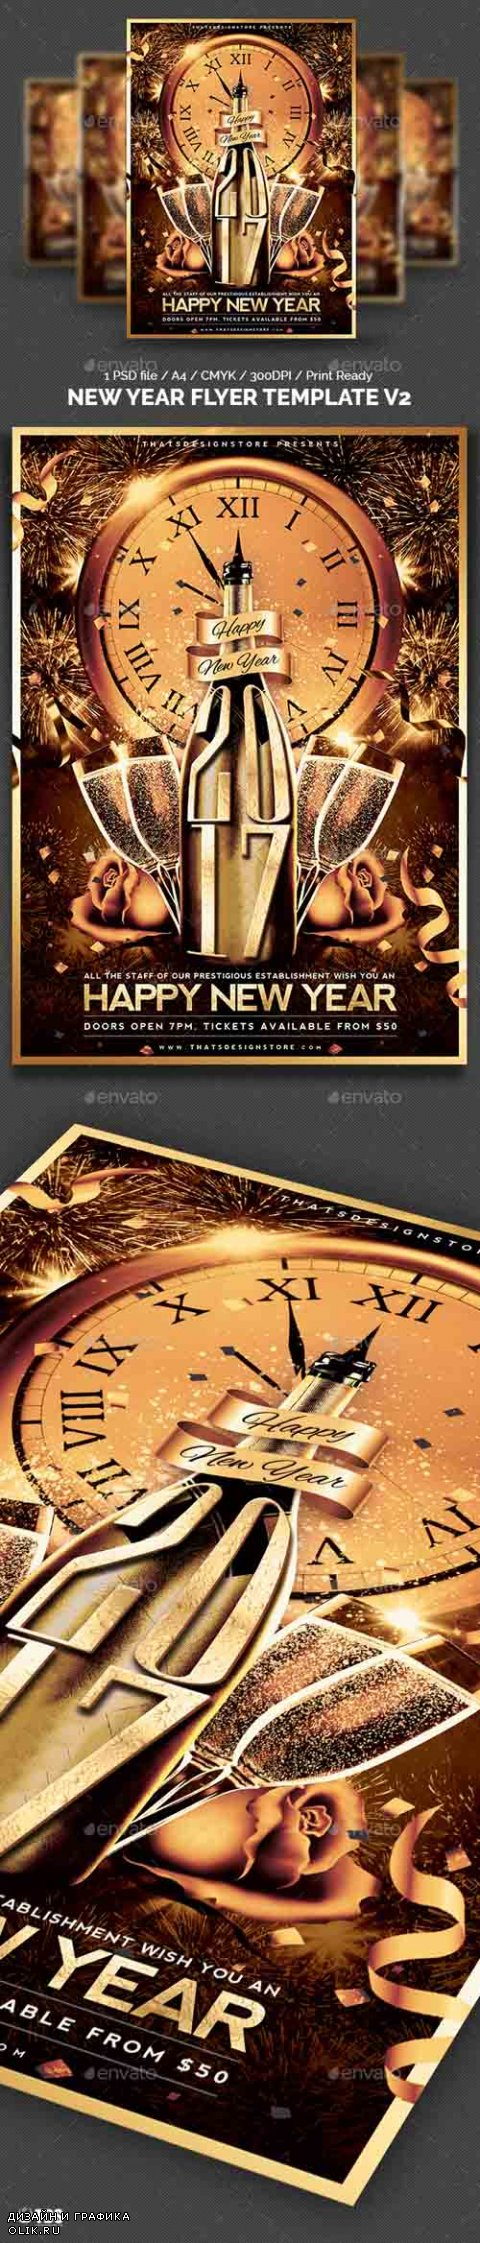 New Year Flyer Template V2 17829516